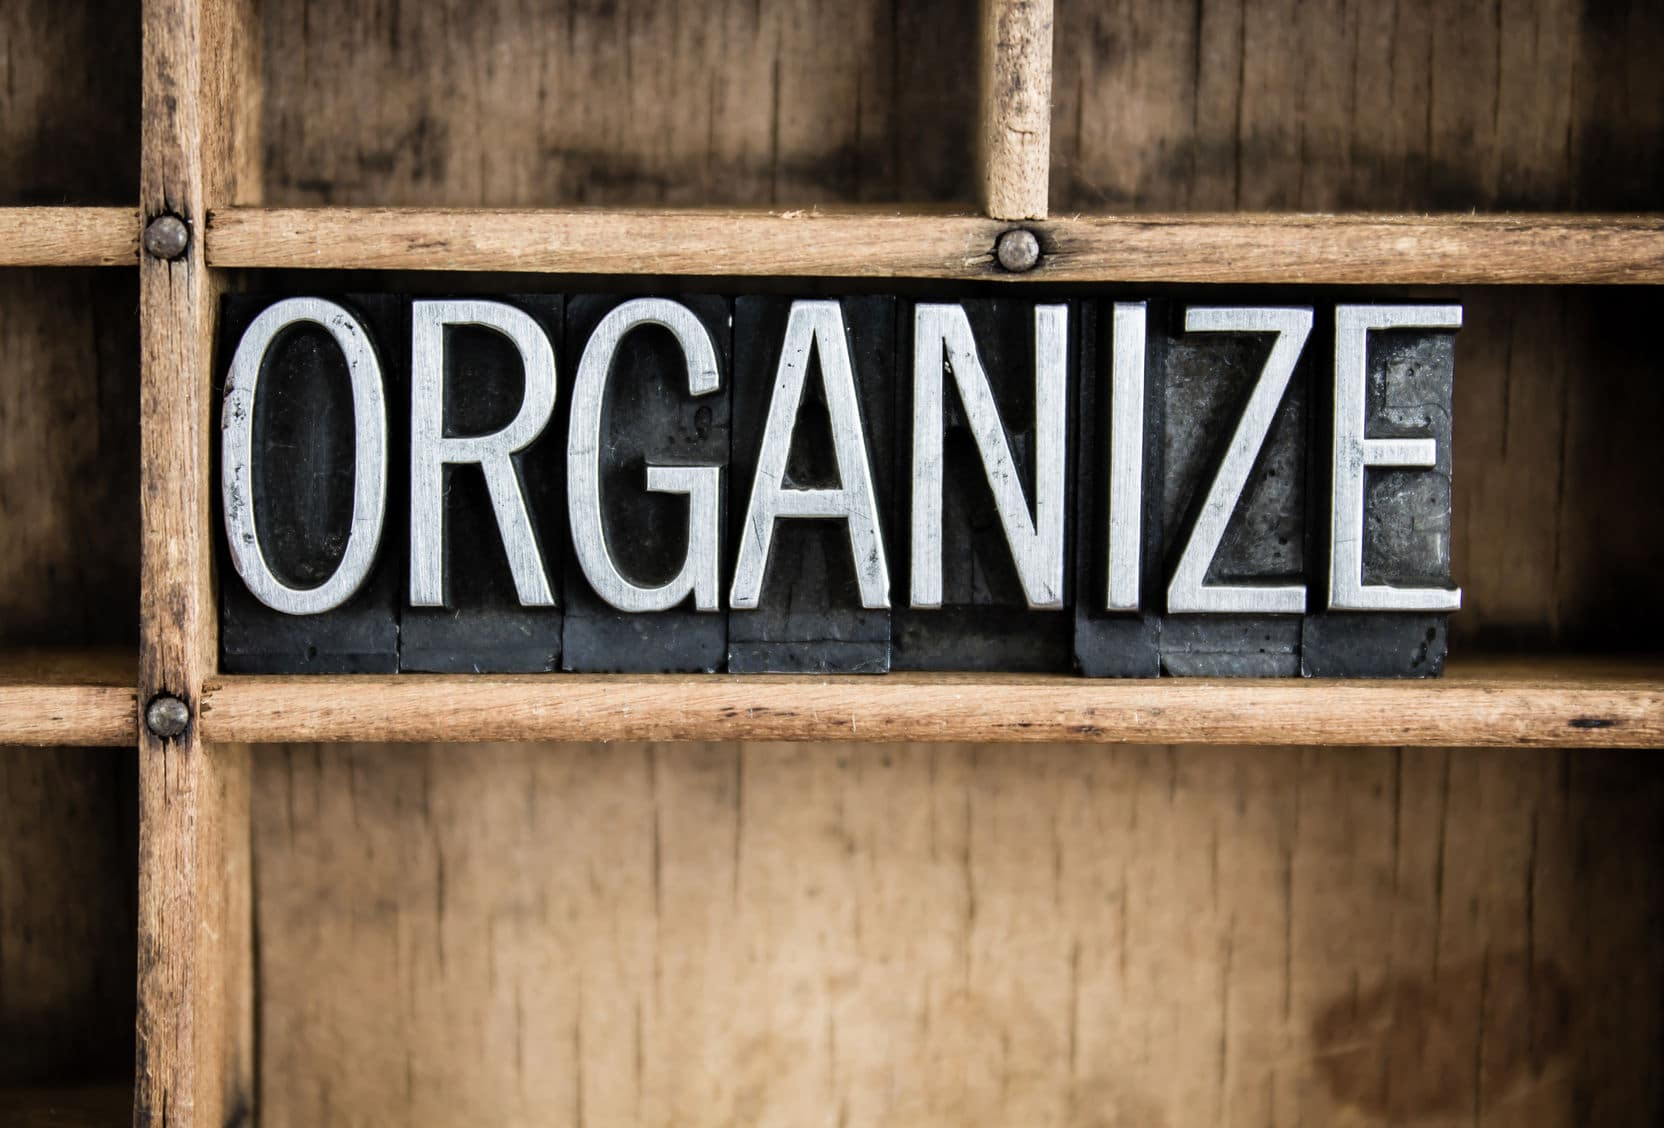 Become a Weekend Warrior by tackling an organizing project.